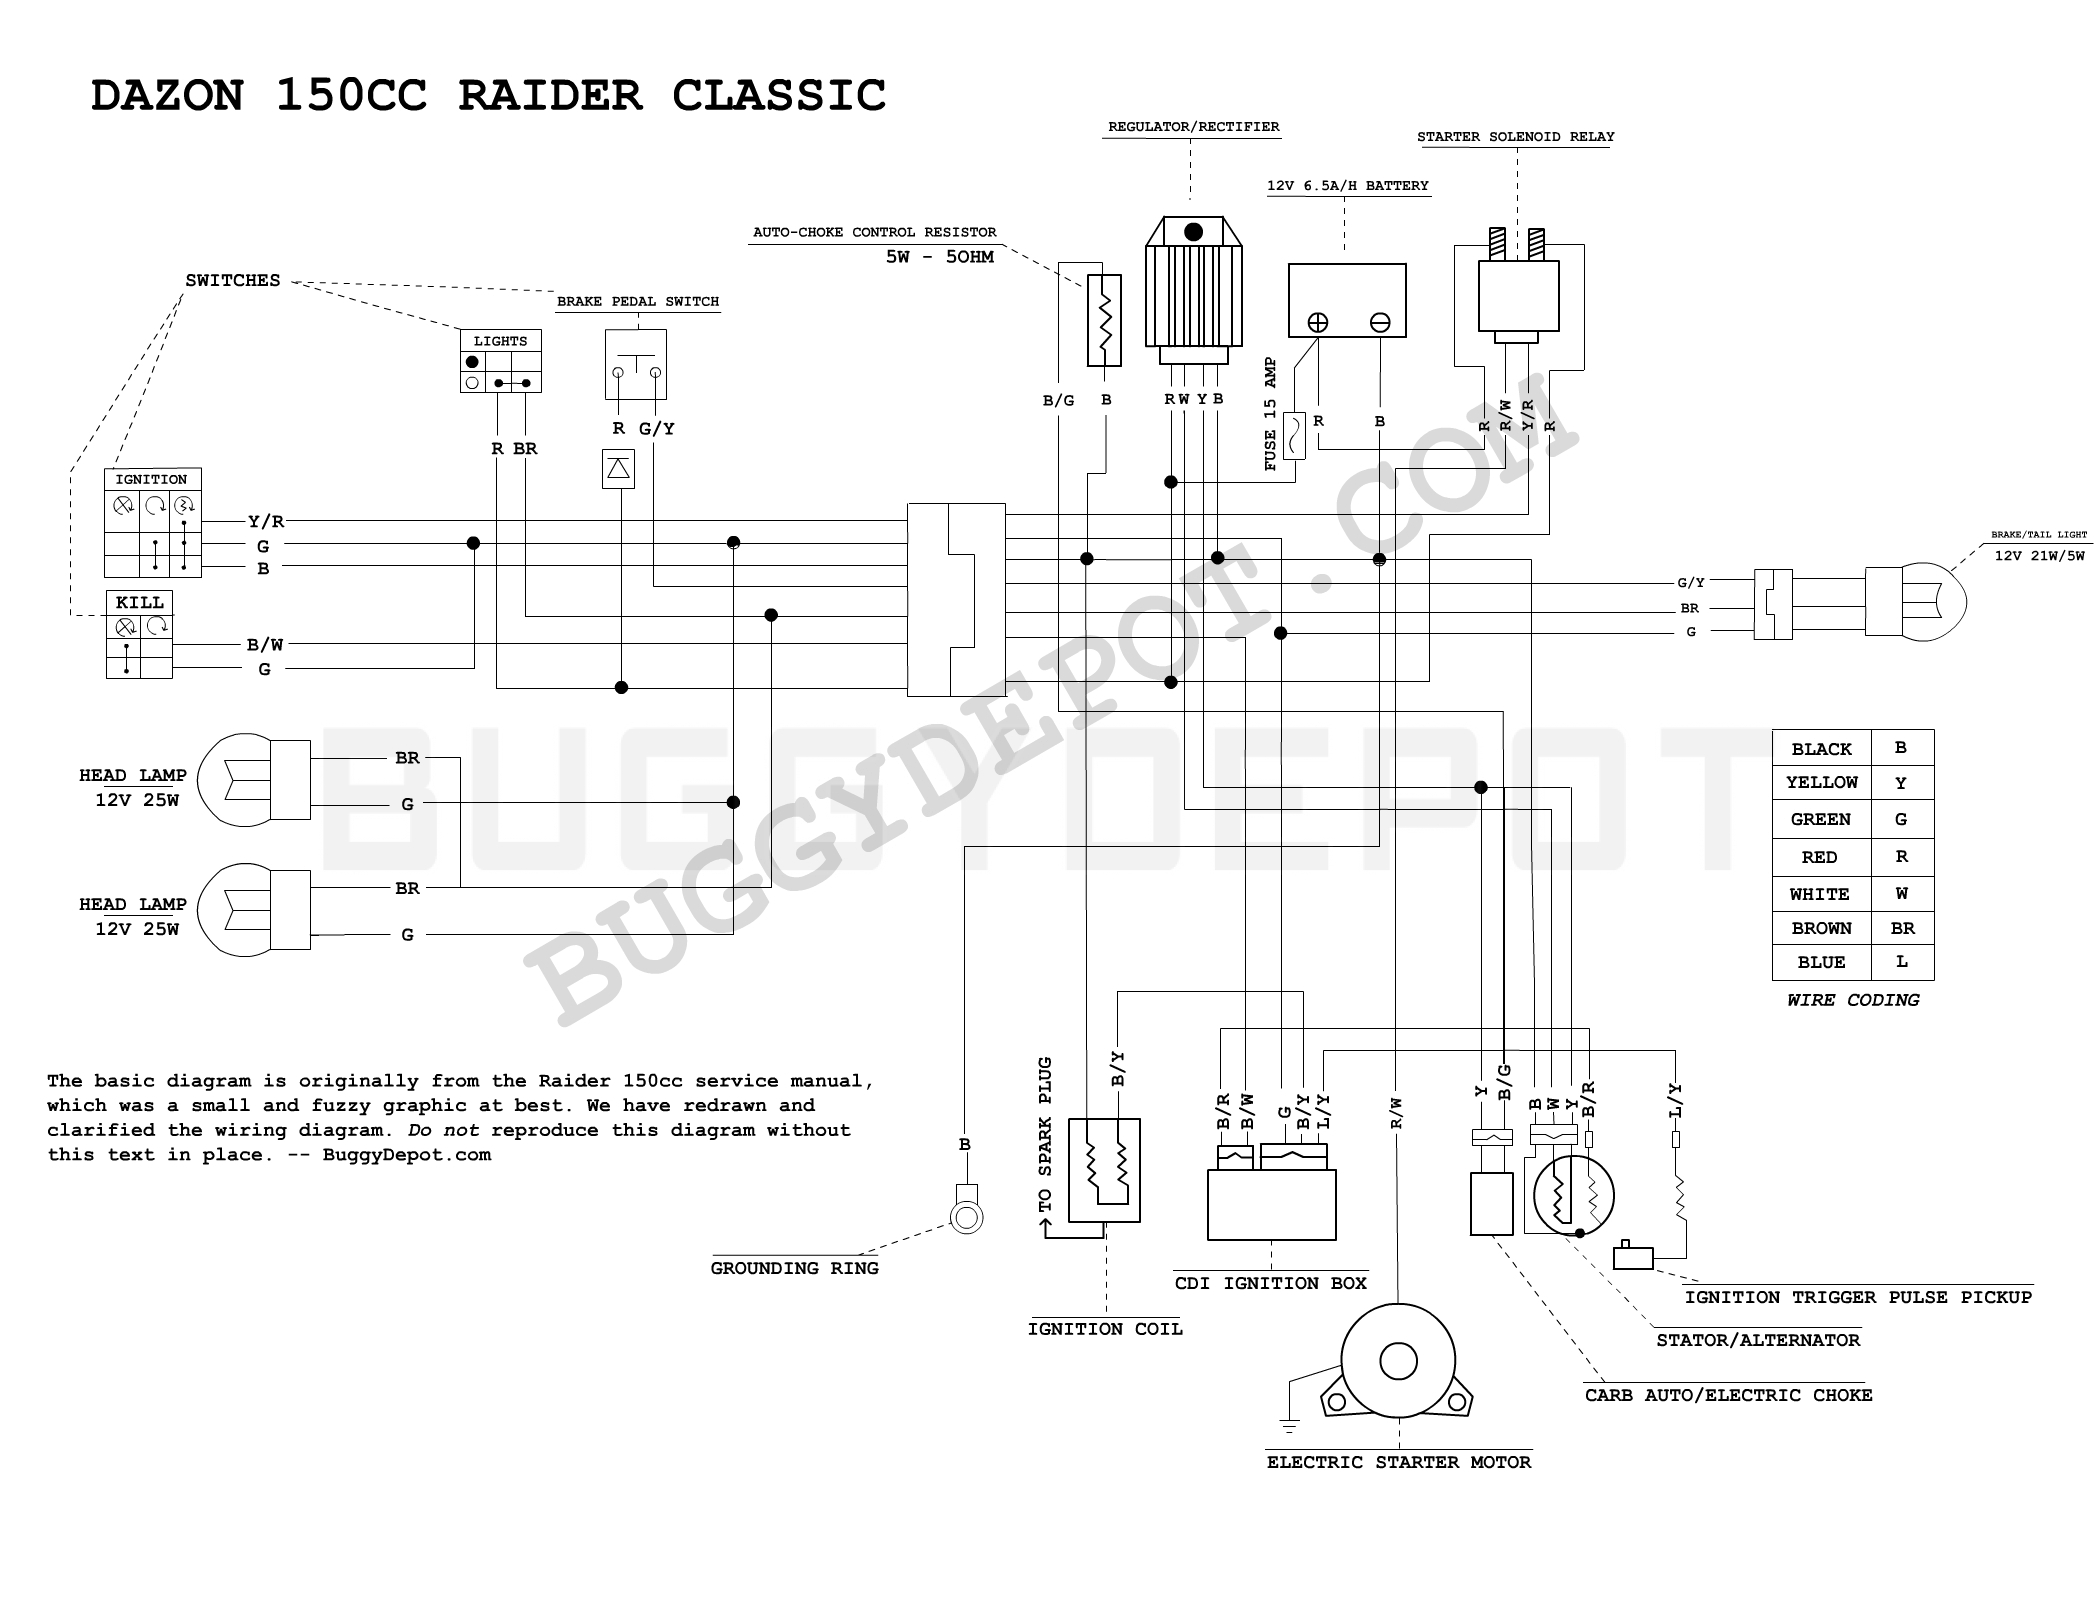 article_33_1278205207 dazon raider classic wiring diagram buggy depot technical center Stator Assembly at alyssarenee.co